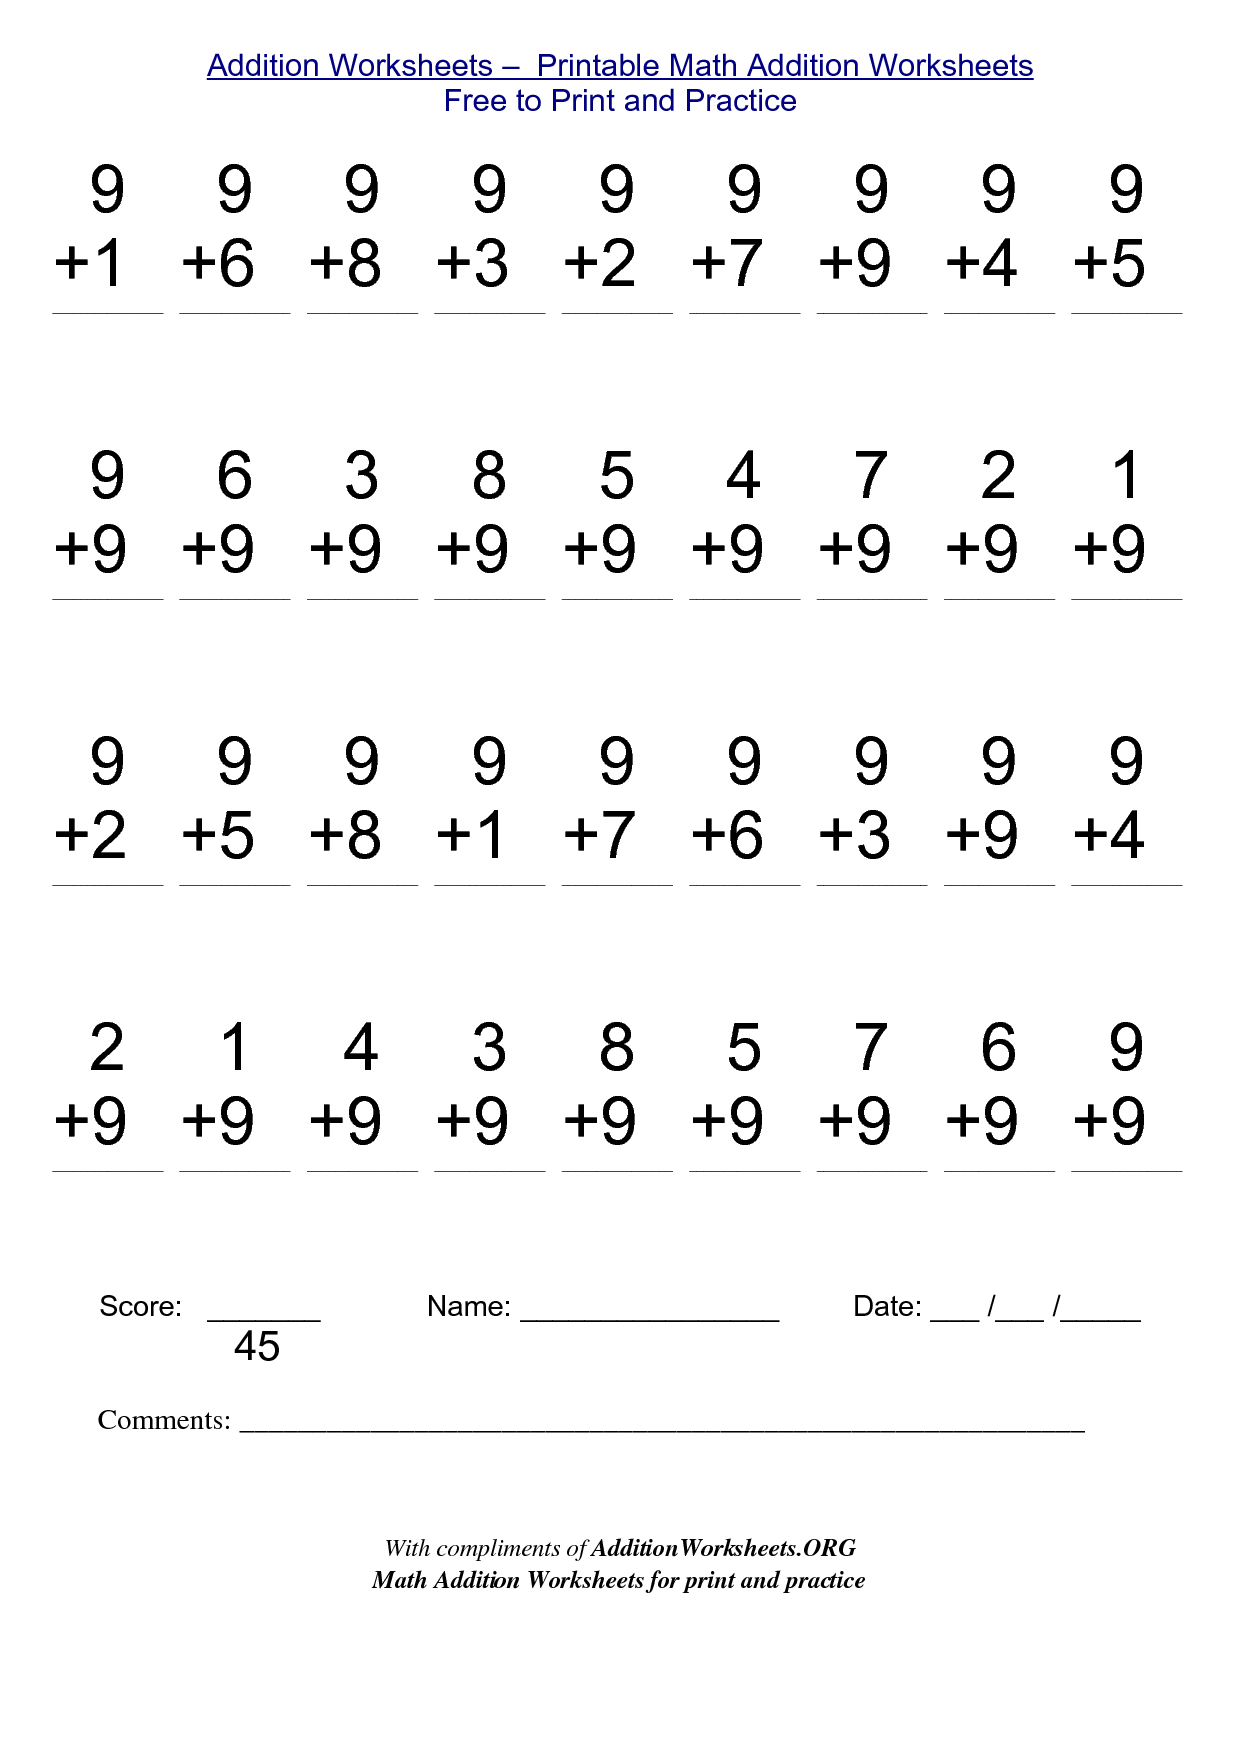 Math Worksheets for Free to Print Alot ME – Second Grade Math Problems Worksheet